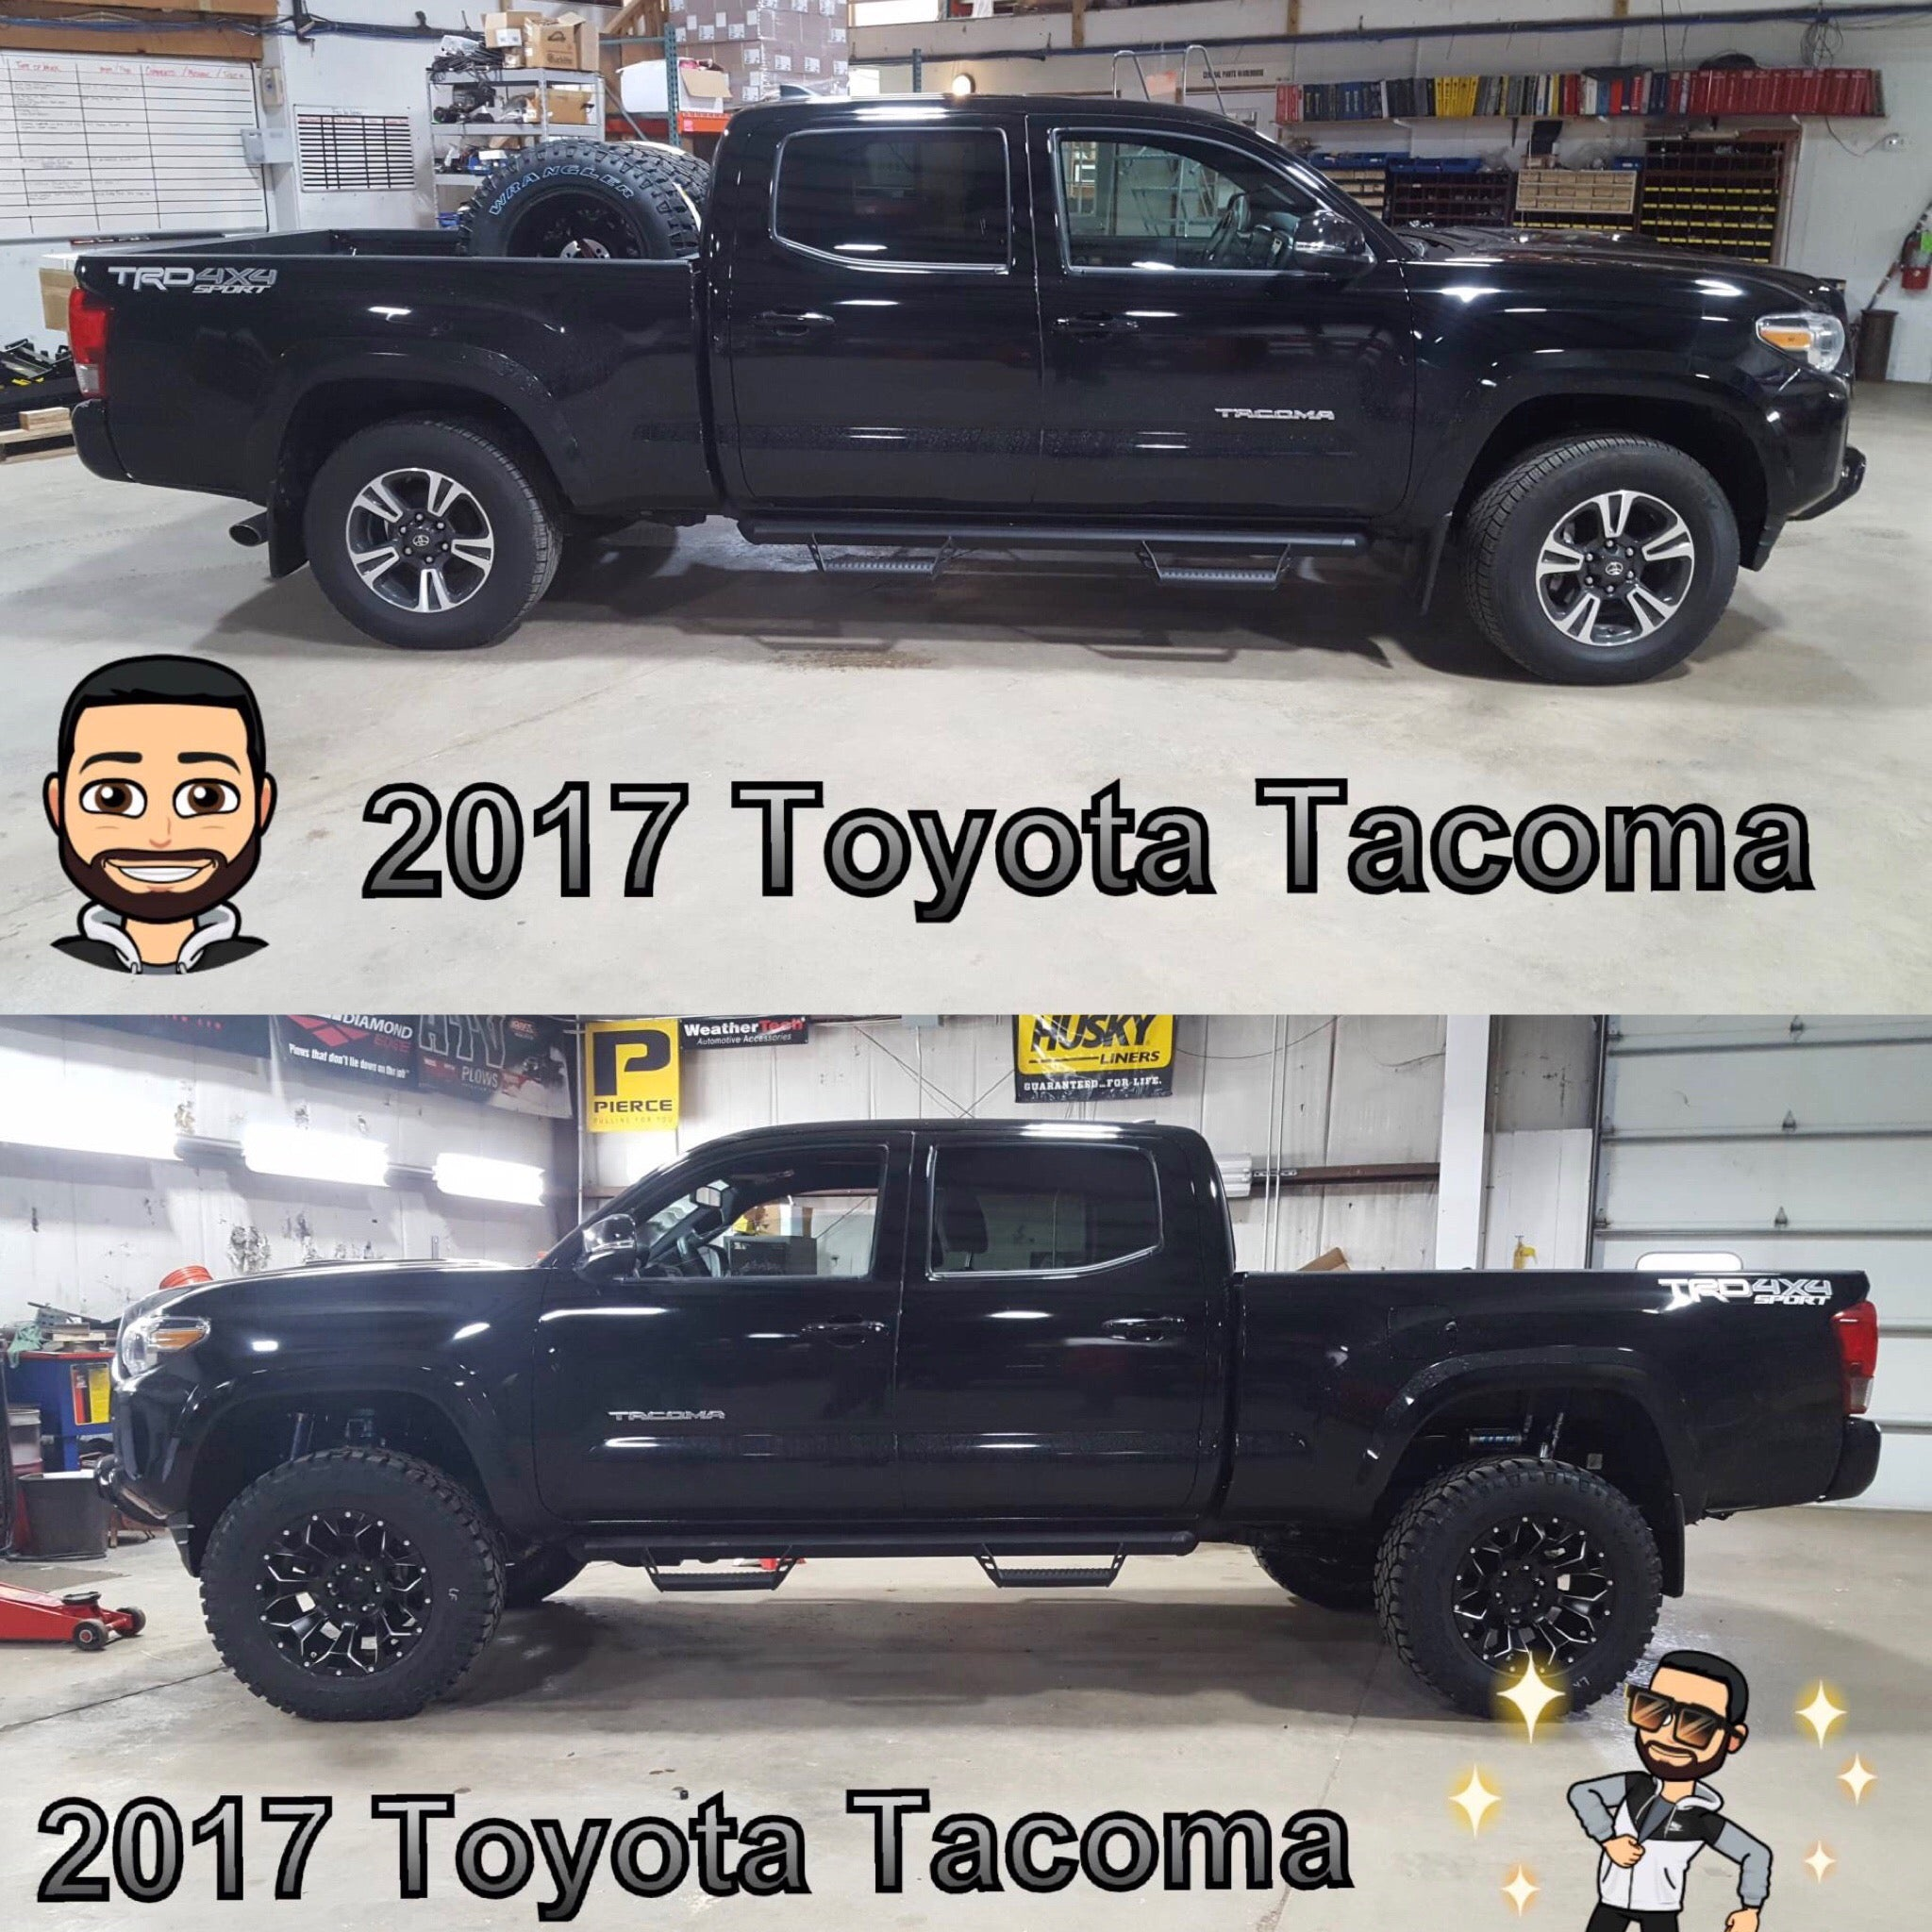 2017 Toyota Tacoma Lift Kit & Wheel/Tire Package Installed